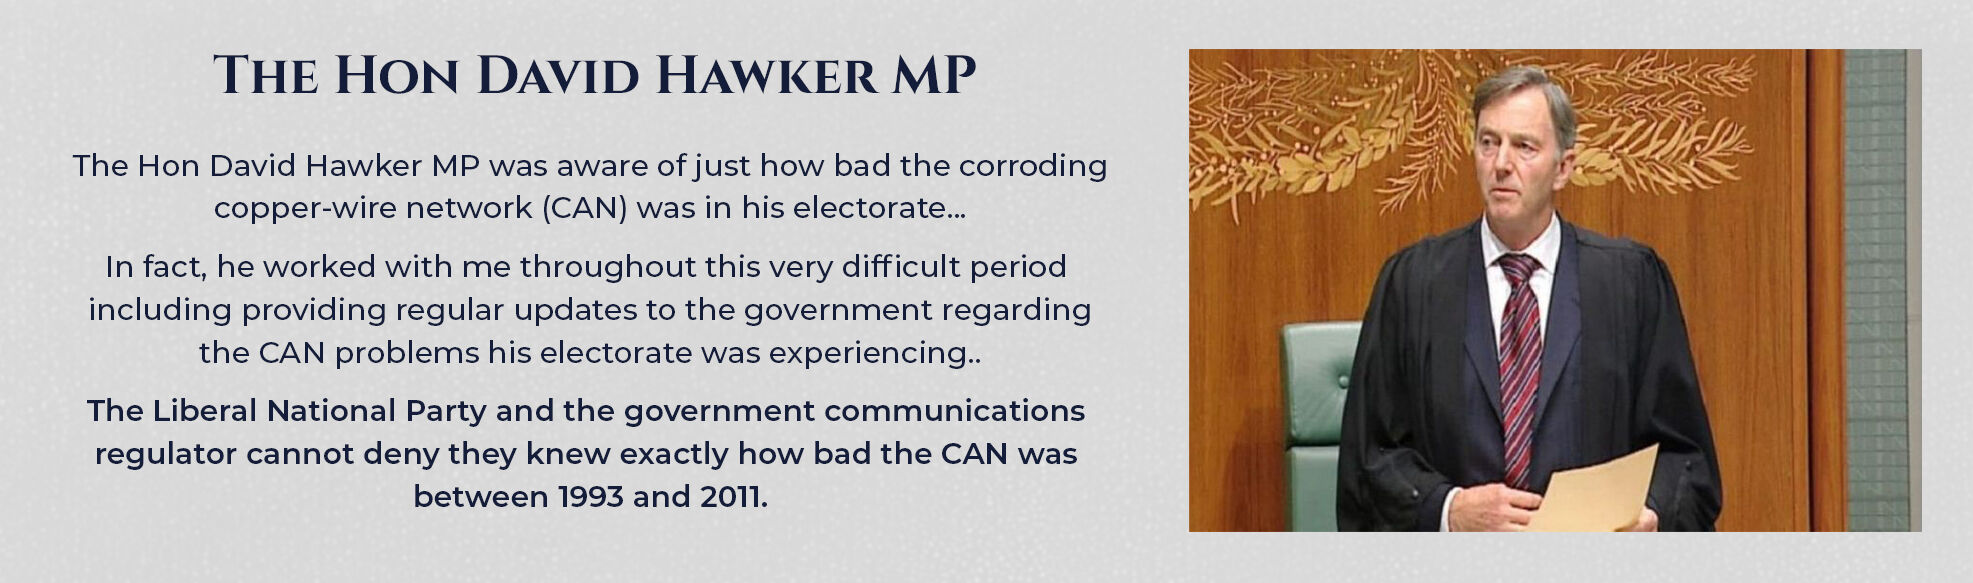 Absent Justice - The Hon David Hawker MP